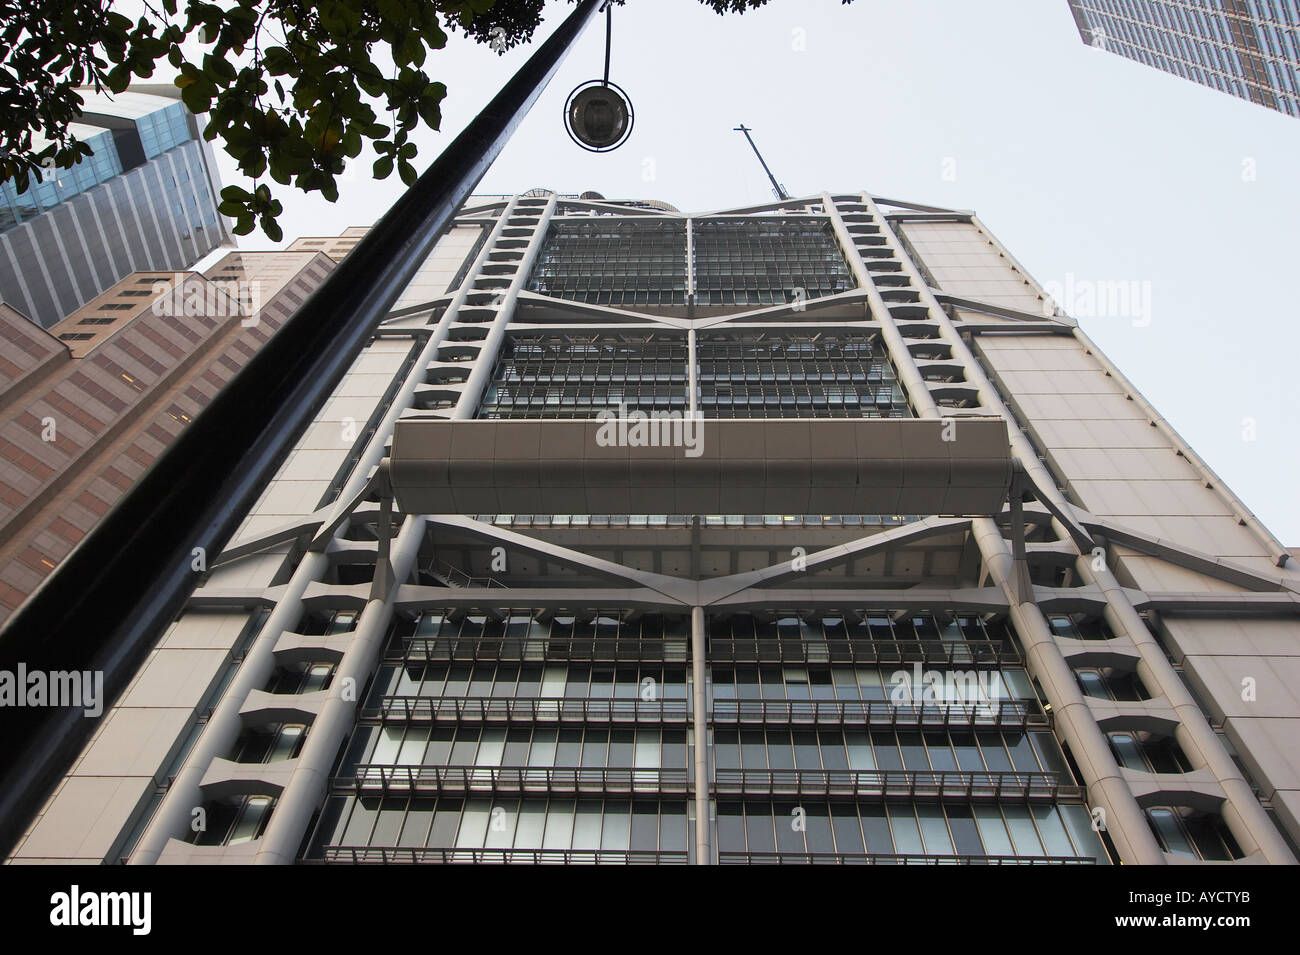 Back View Of HSBC Building, Central - Stock Image